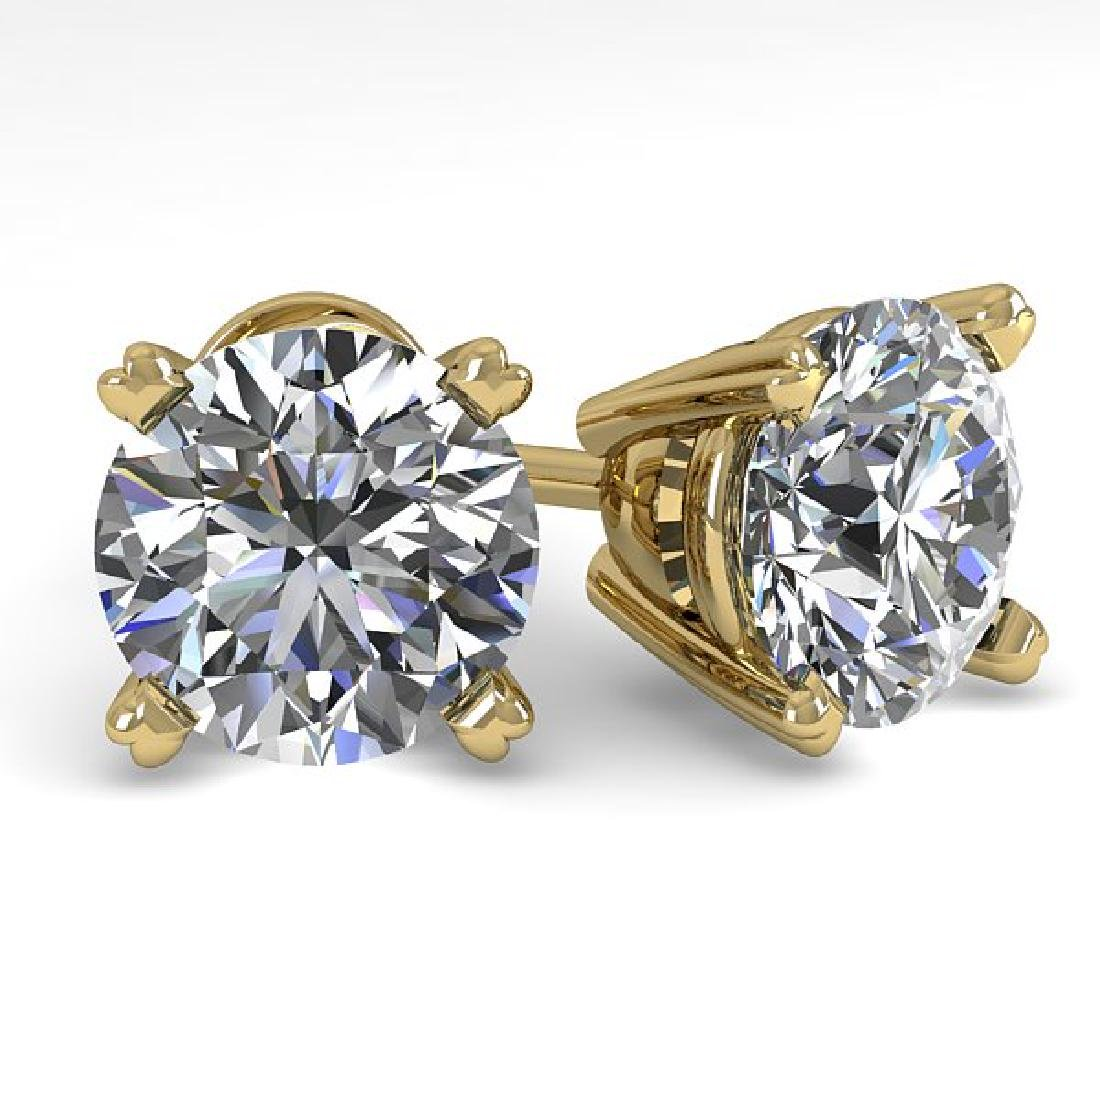 2.53 CTW Certified VS/SI Diamond Stud Earrings 14K